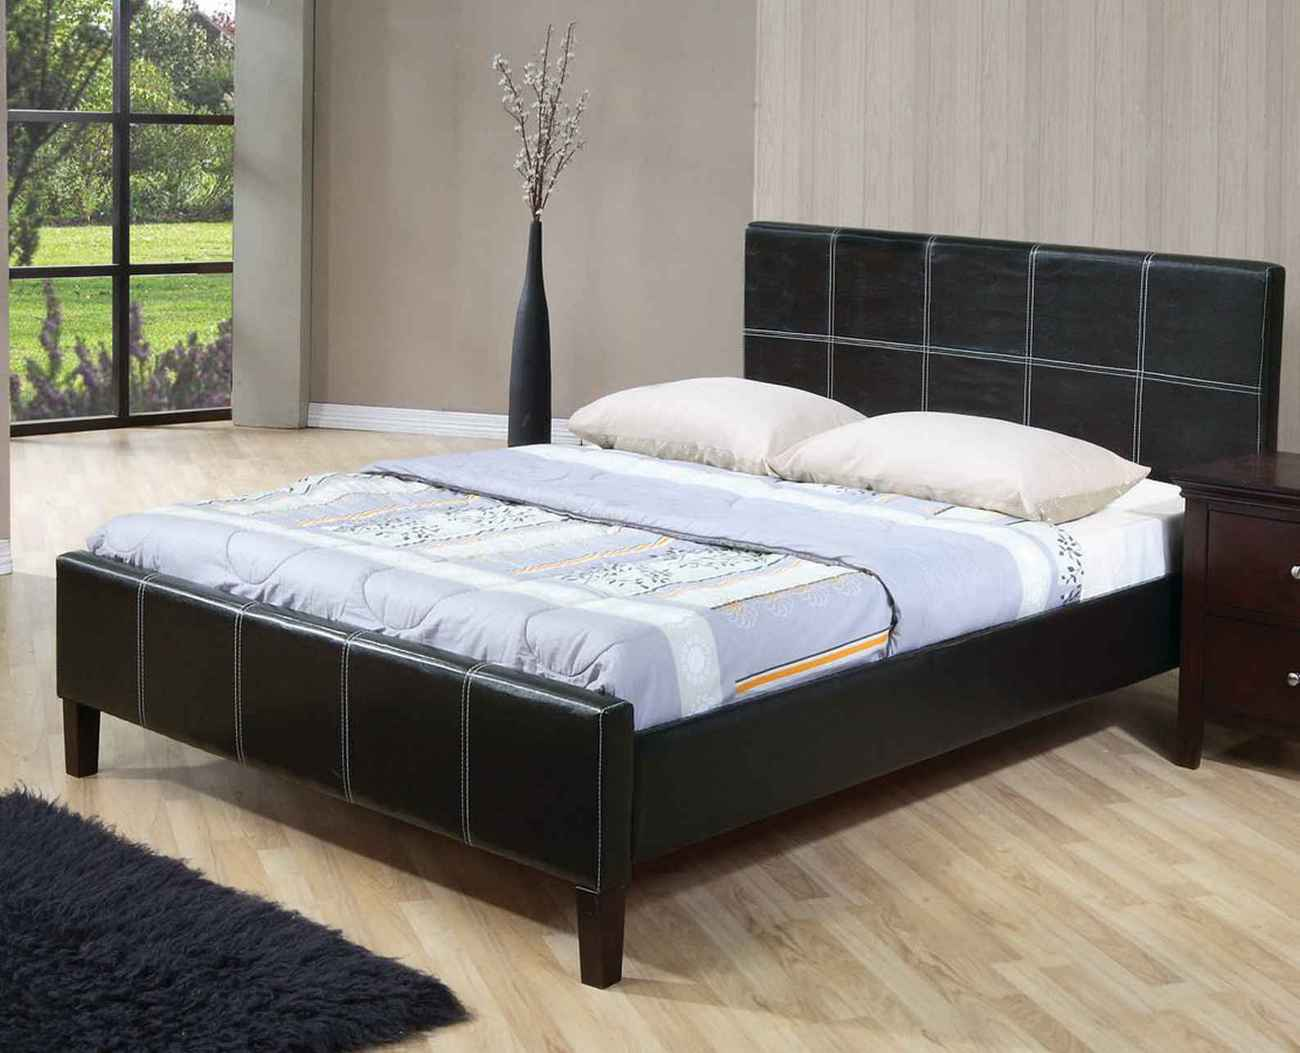 Cheap queen size beds and mattresses Cheapest queen mattress